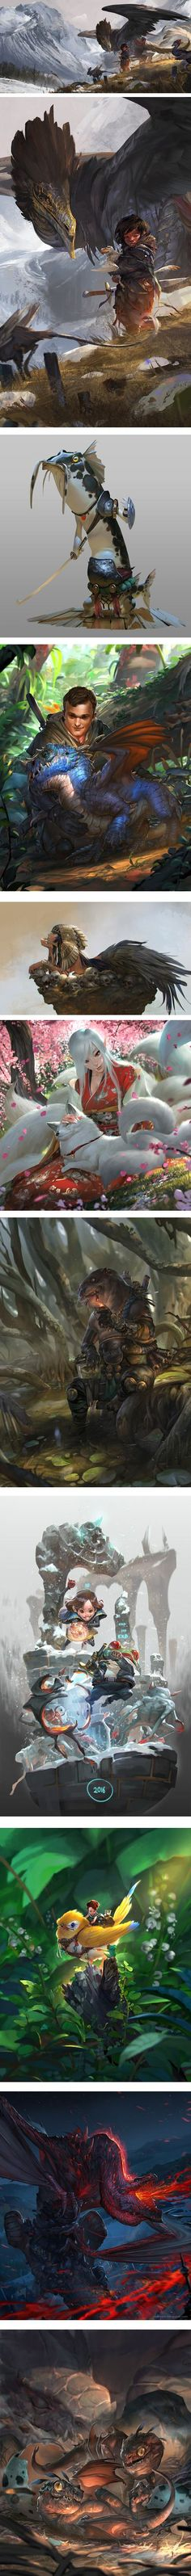 Rudy Siswanto, concept art, illustration